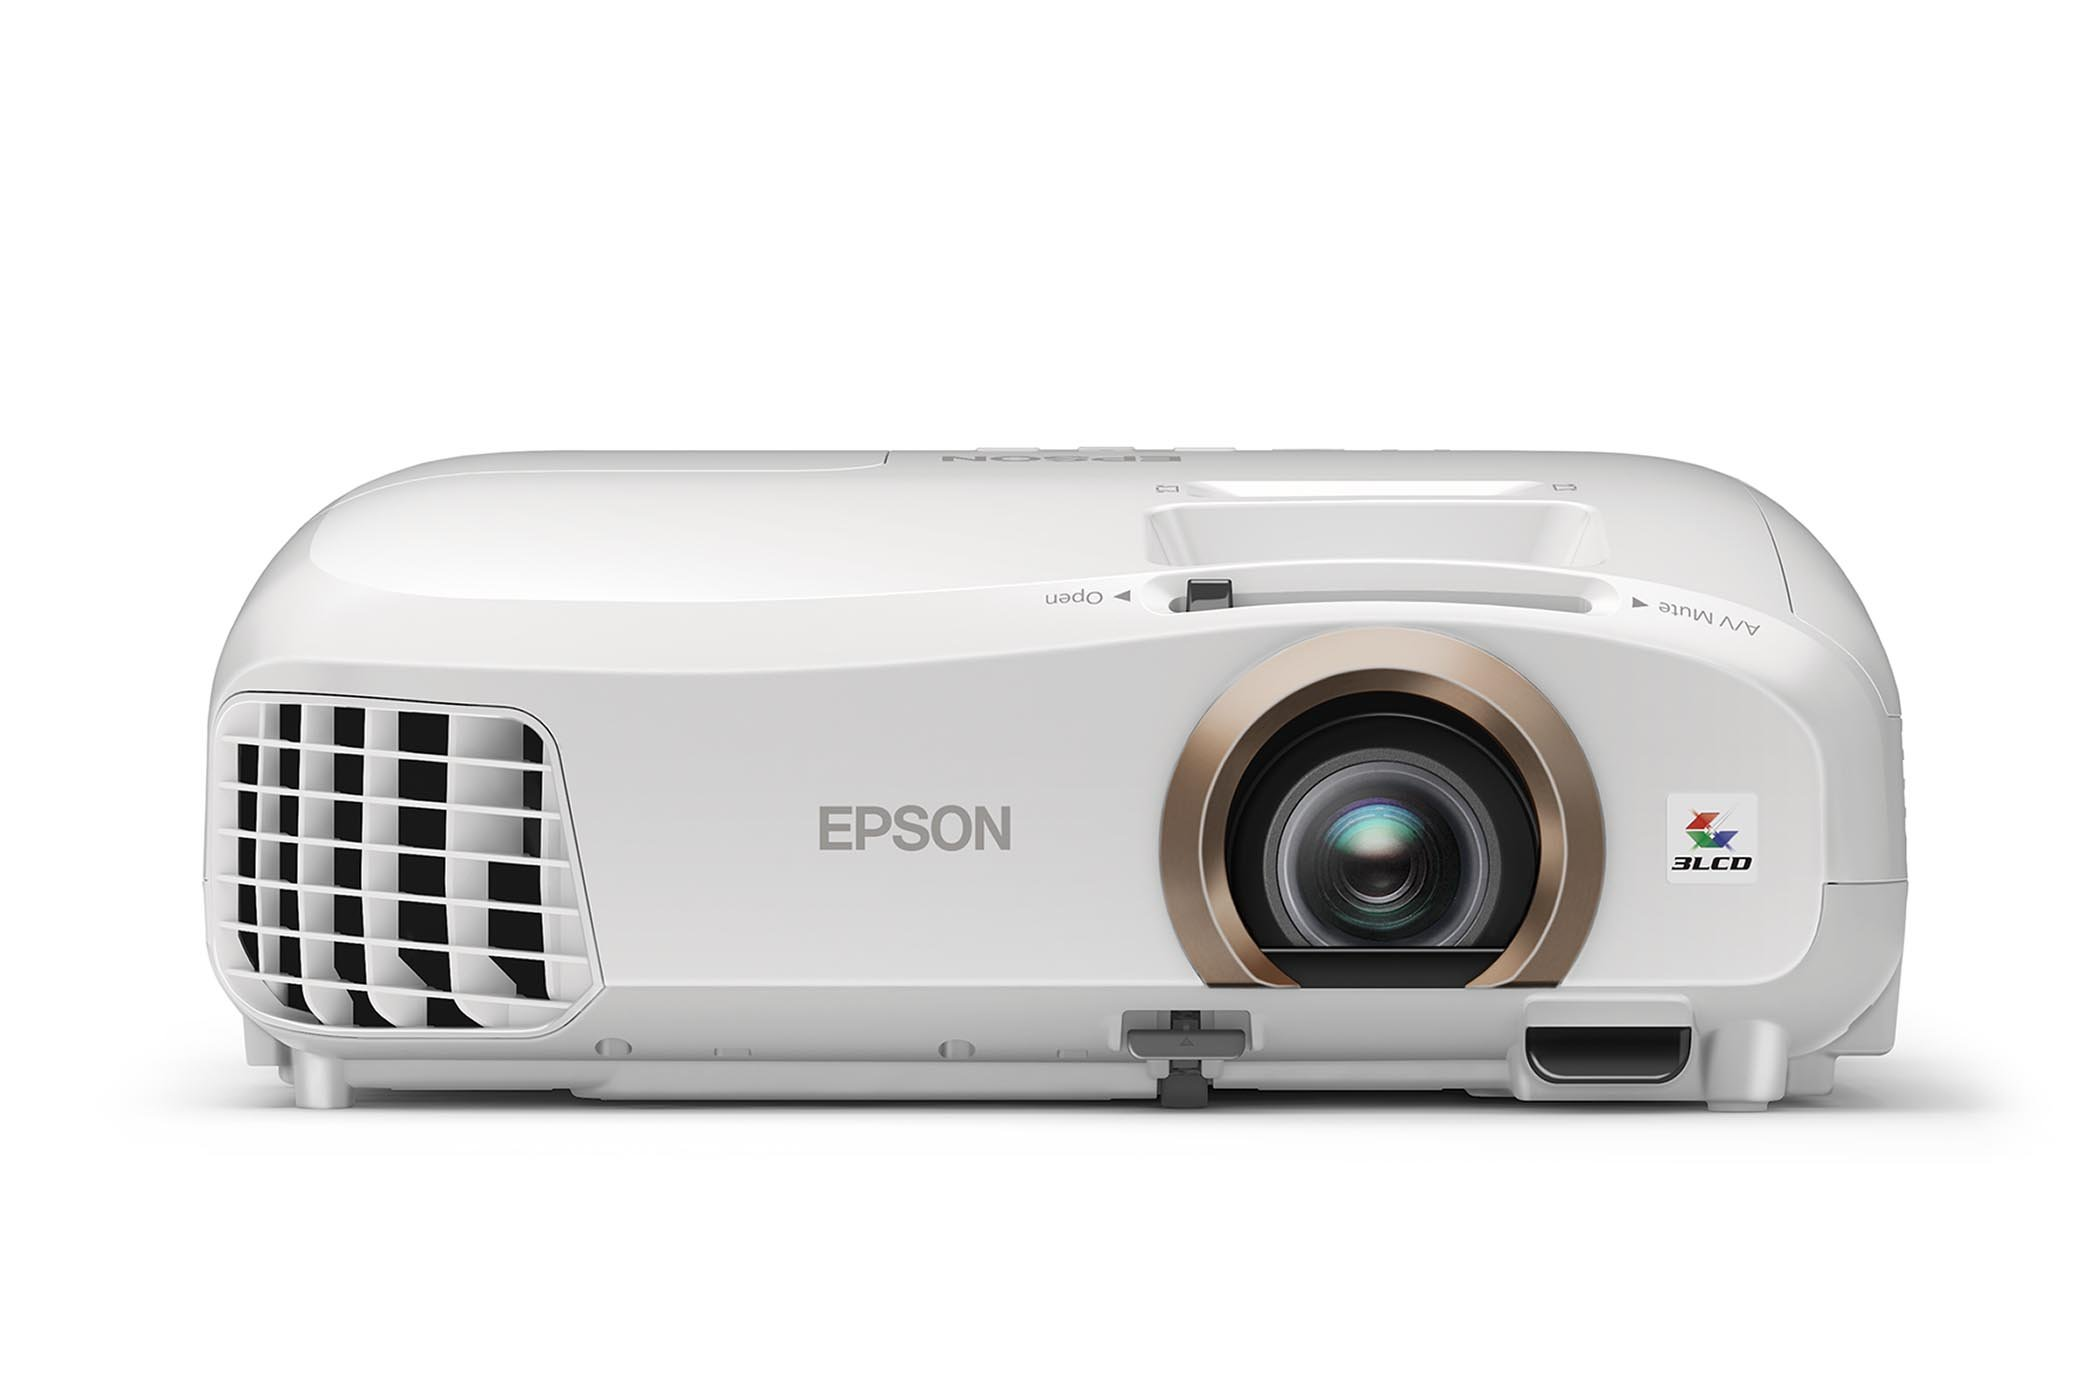 Epson Home Cinema 2045 1080p 3D Miracast 3LCD Home Theater Projector by Epson (Image #2)